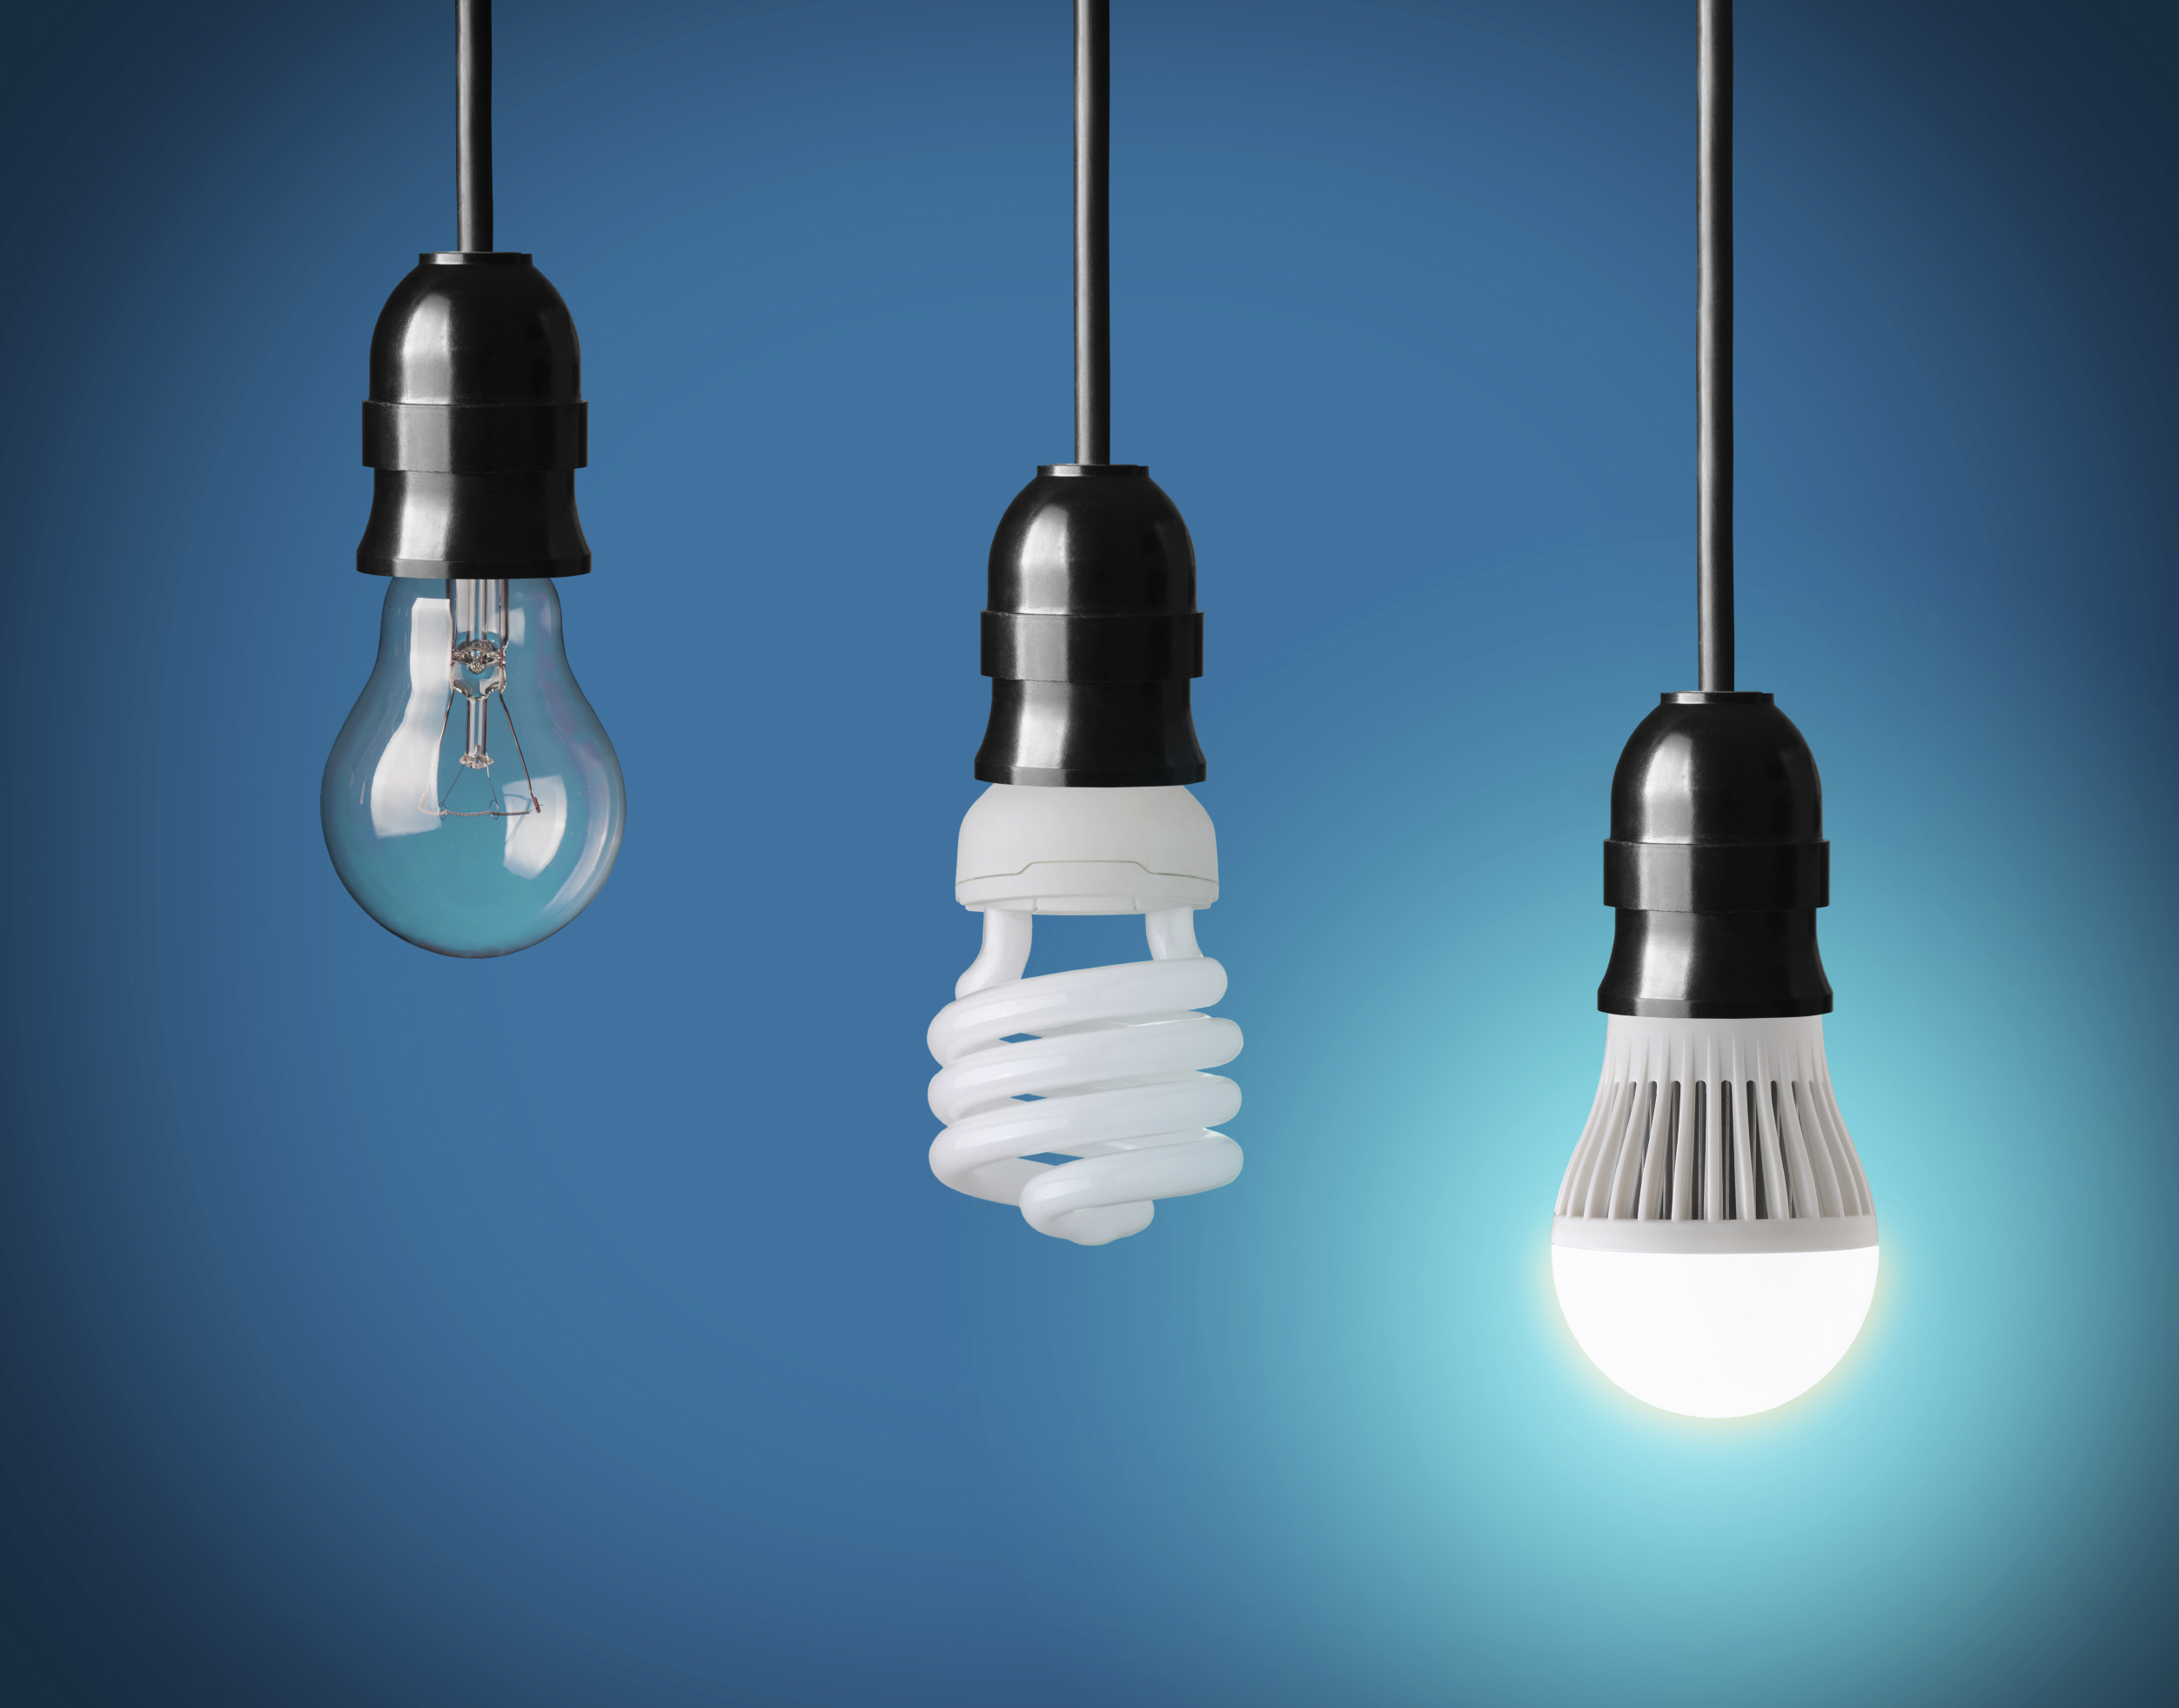 Lightbulb energy saving